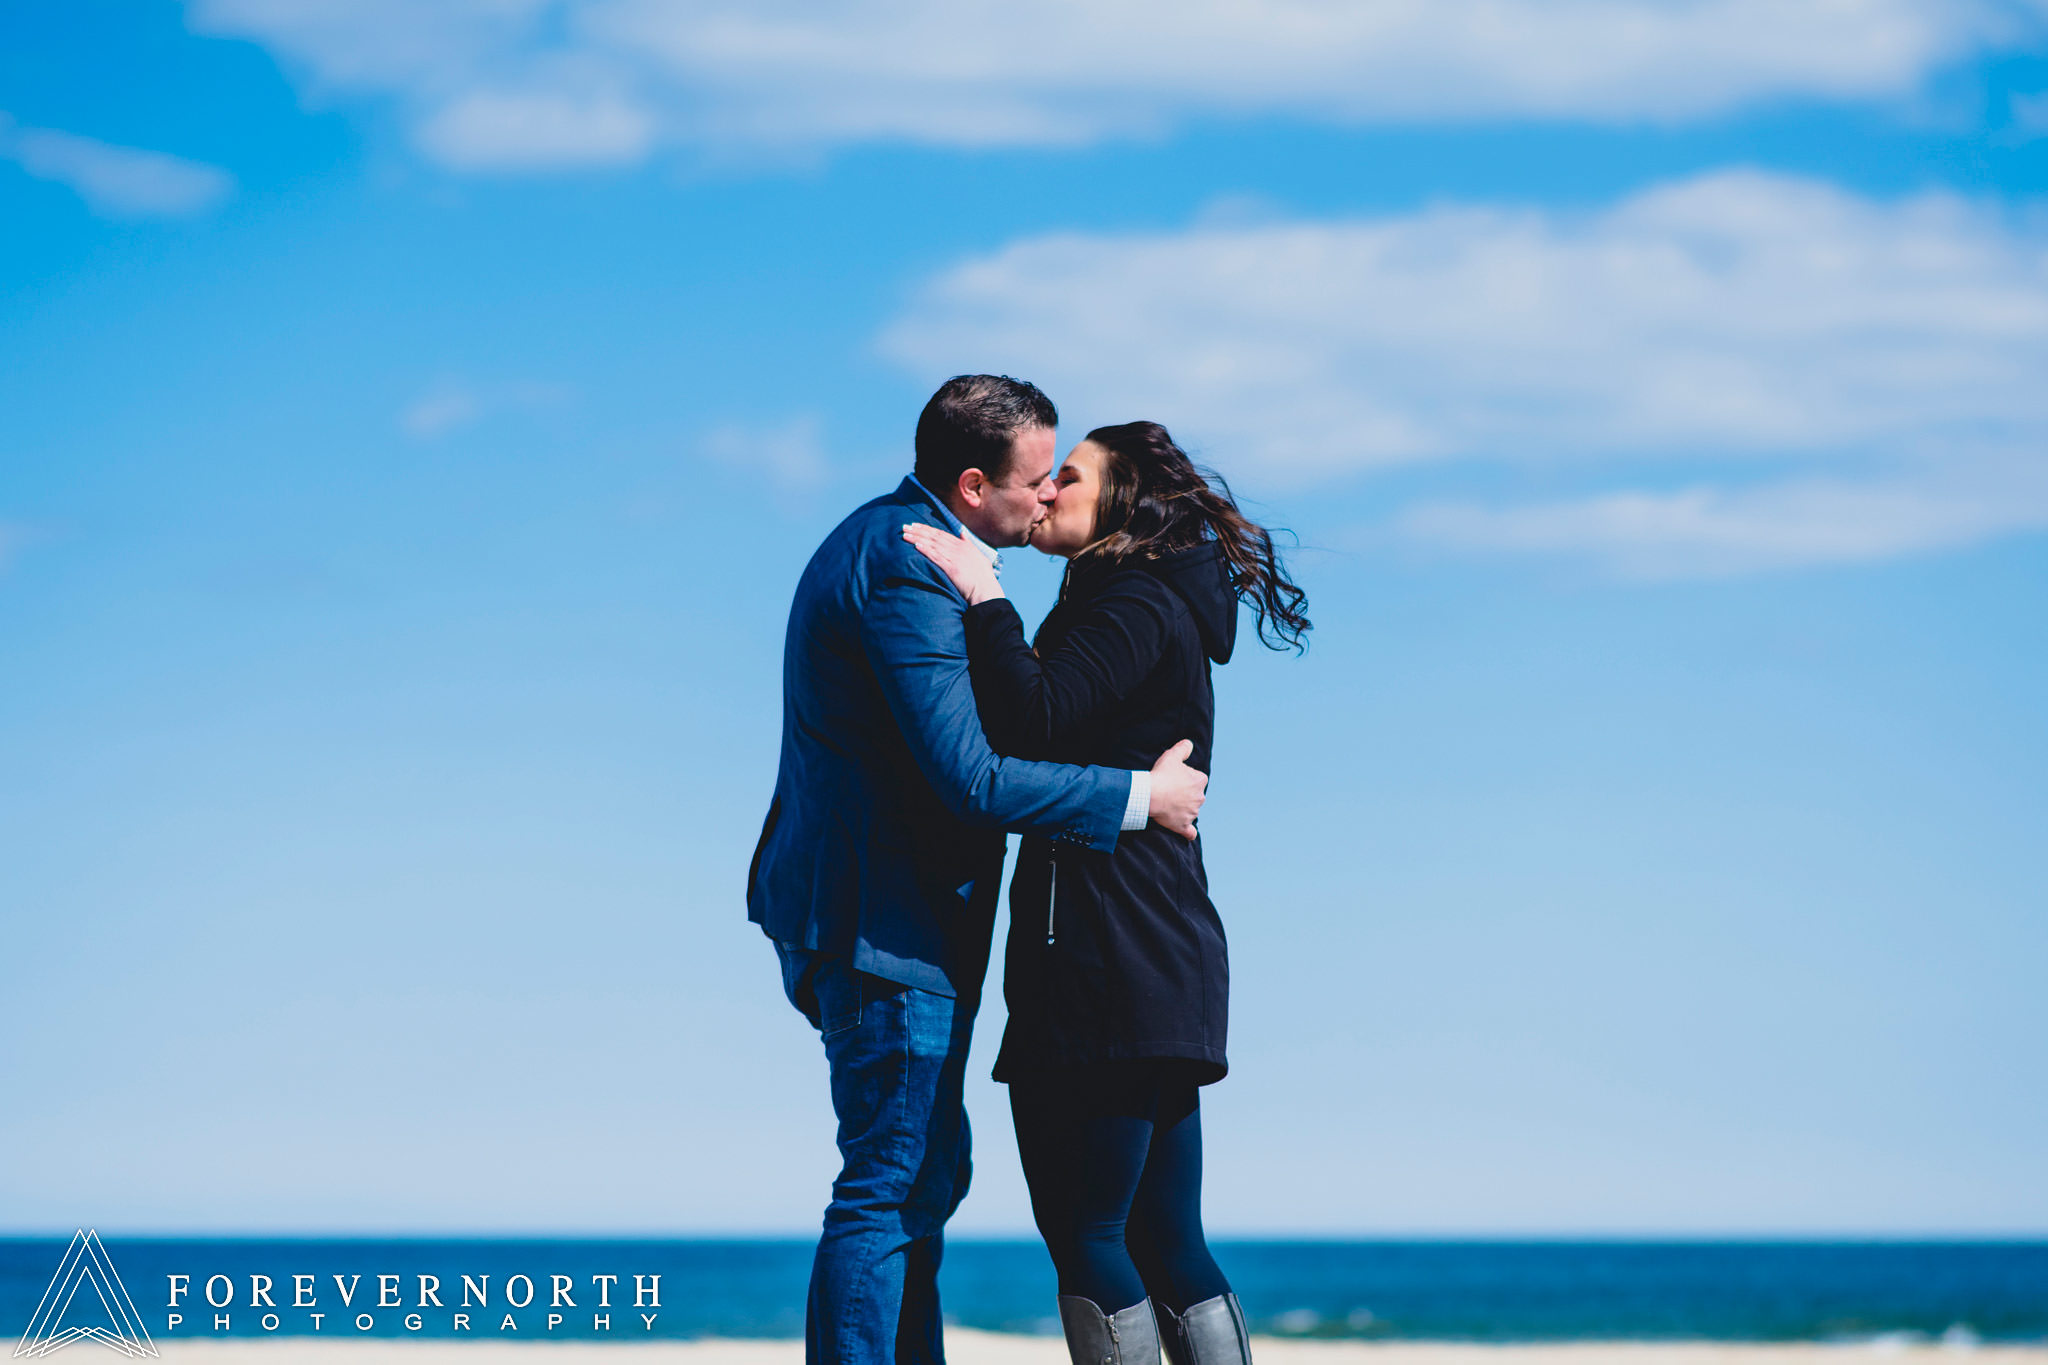 Schall-Forever-North-Photography-Proposal-Engagement-Photographer-Manasquan-Beach-19.JPG